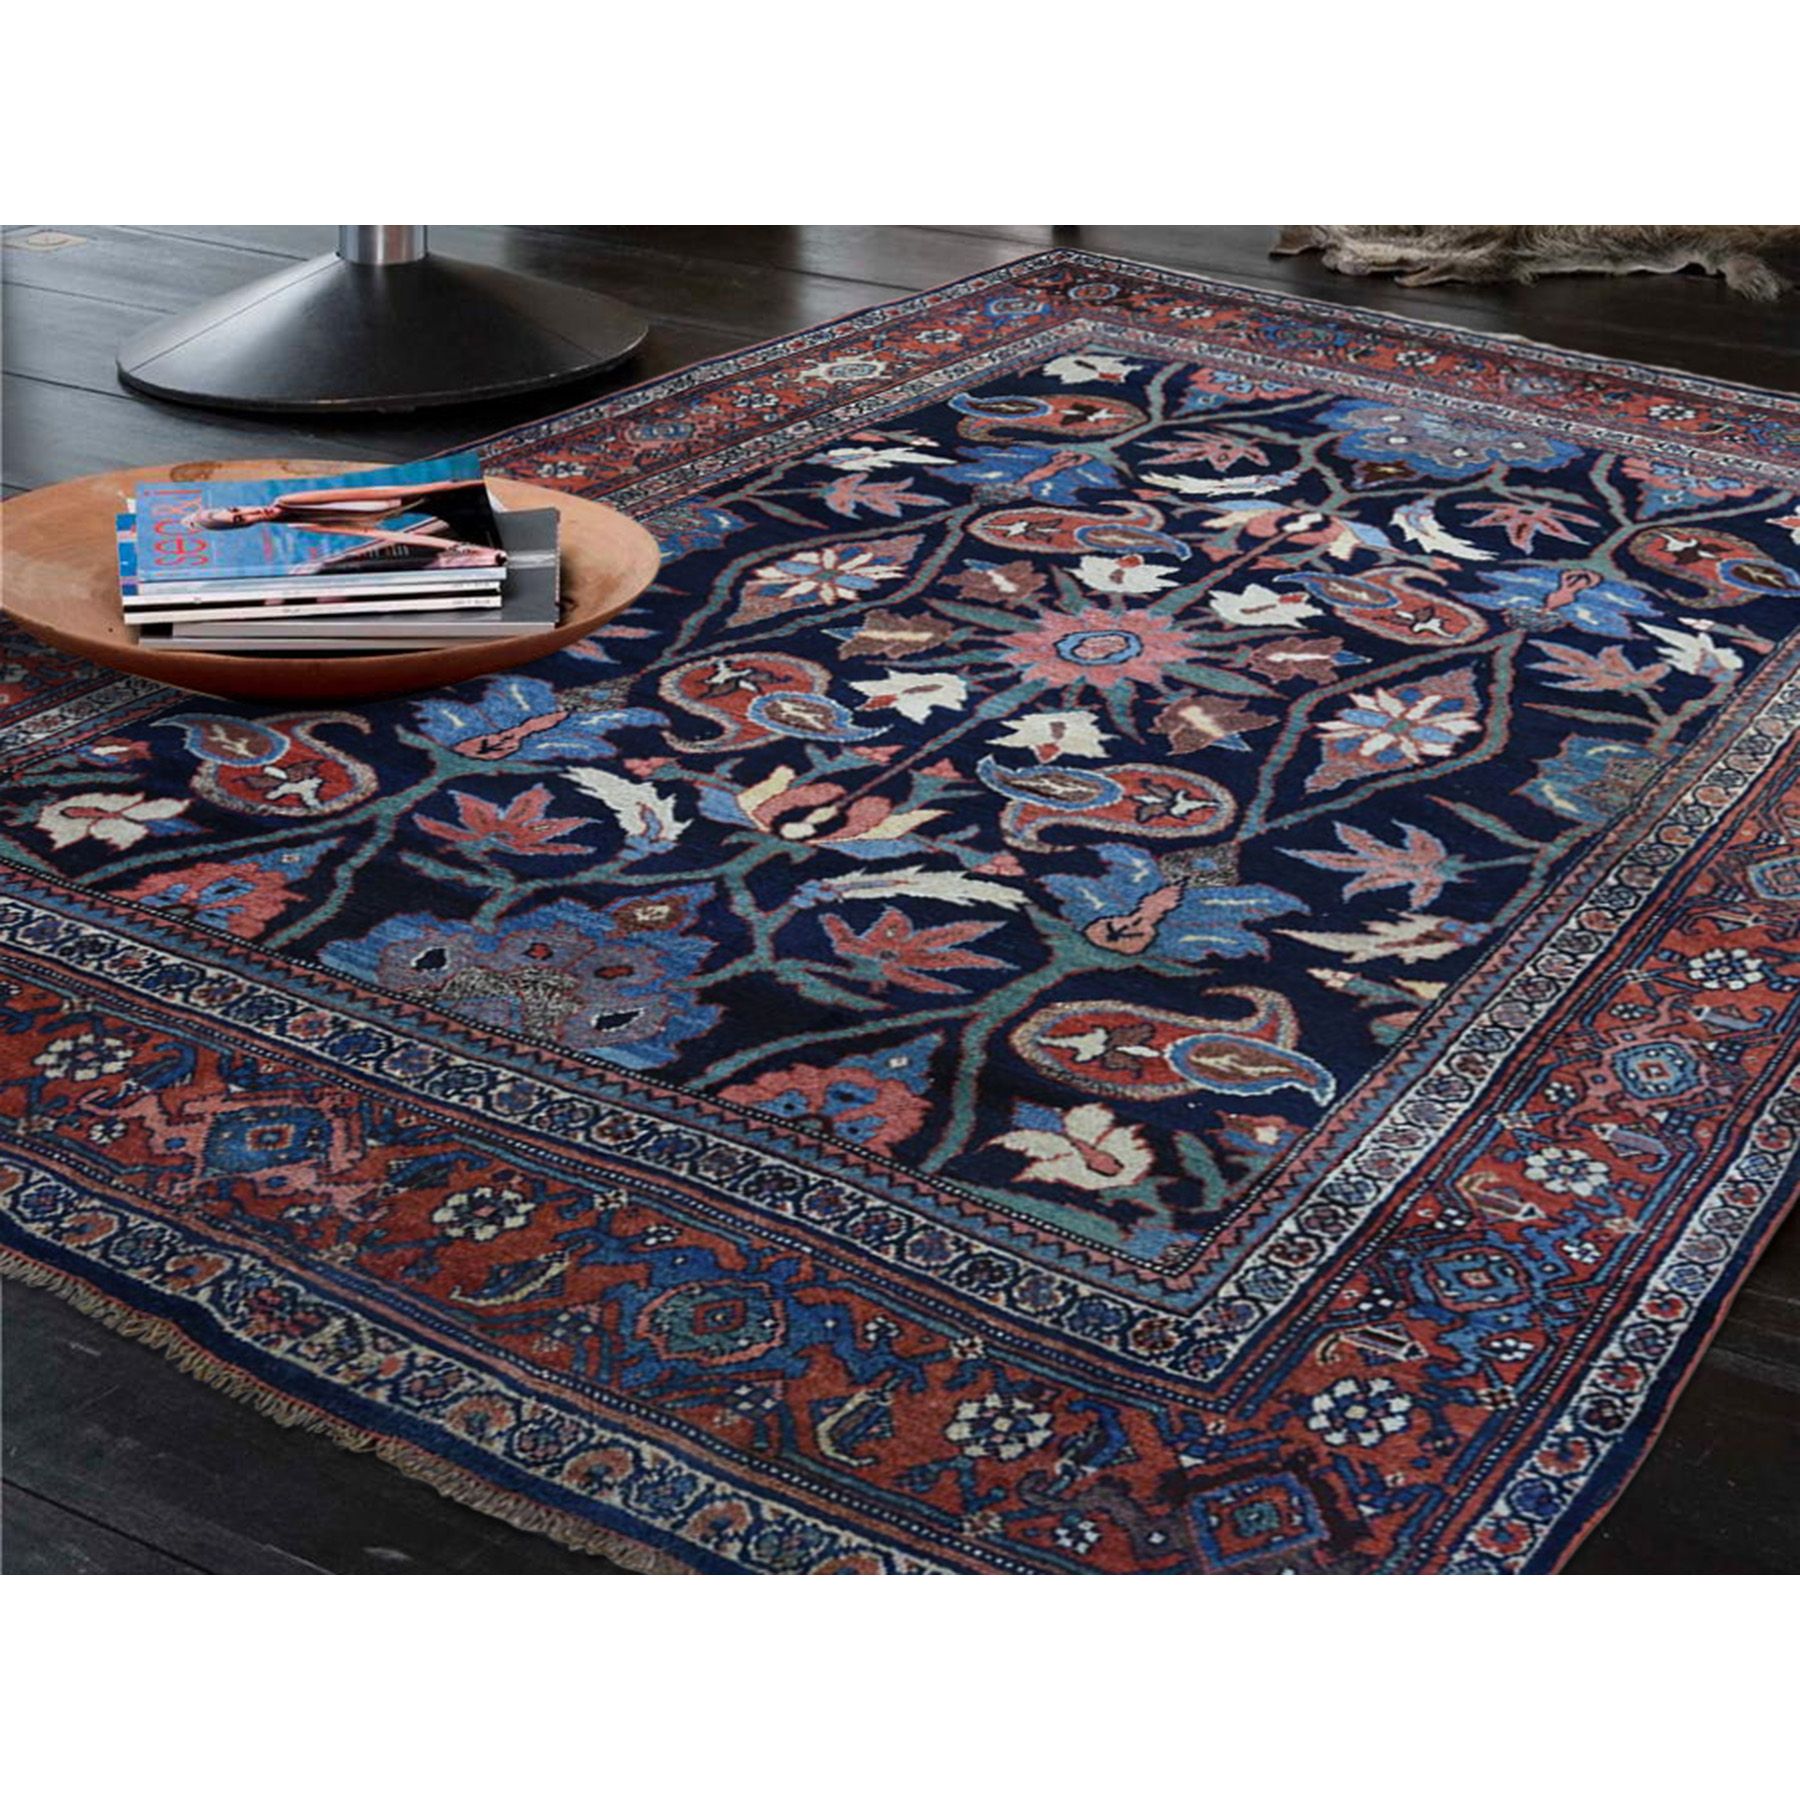 4-6 x6-6  Antique Persian Bijar Pure Wool Exc Condition Full Pile Hand-Knotted Oriental Rug